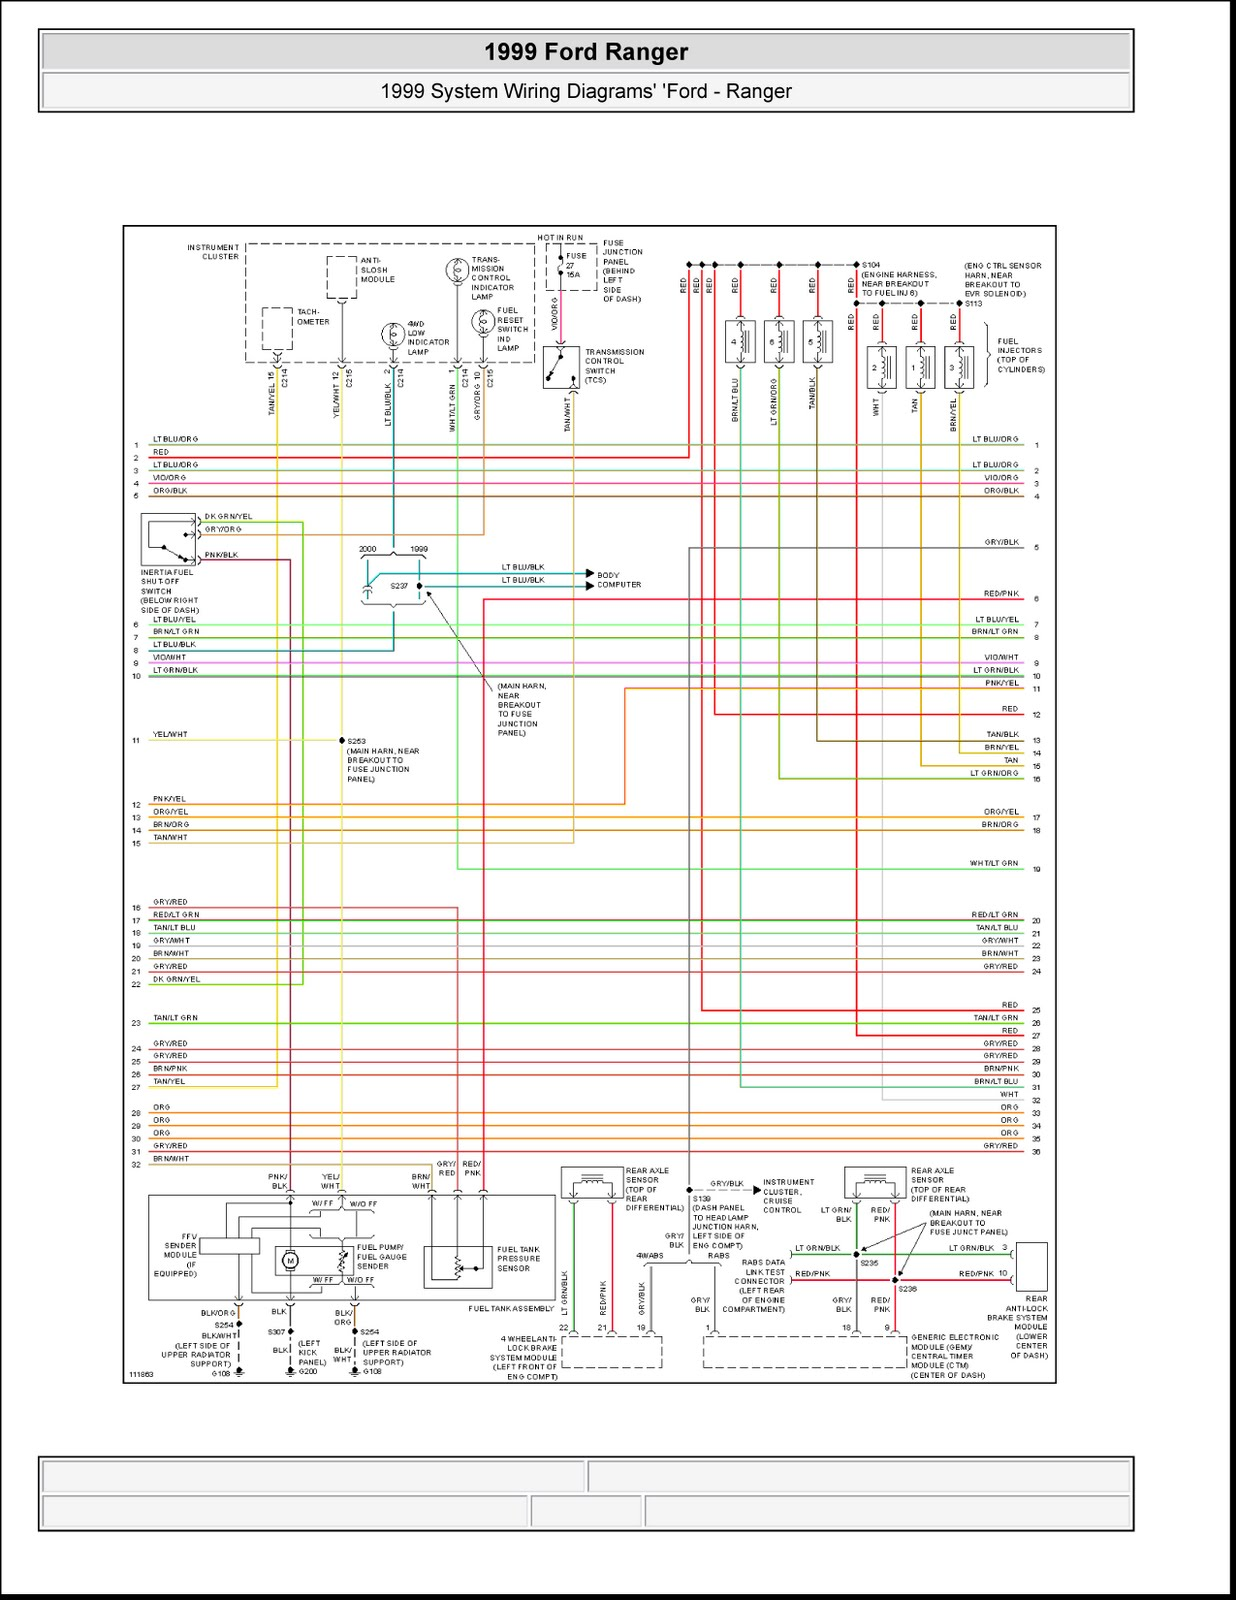 hight resolution of 1999 ford ranger system wiring diagrams 4 images ford ranger electrical diagram ford ranger electrical diagram